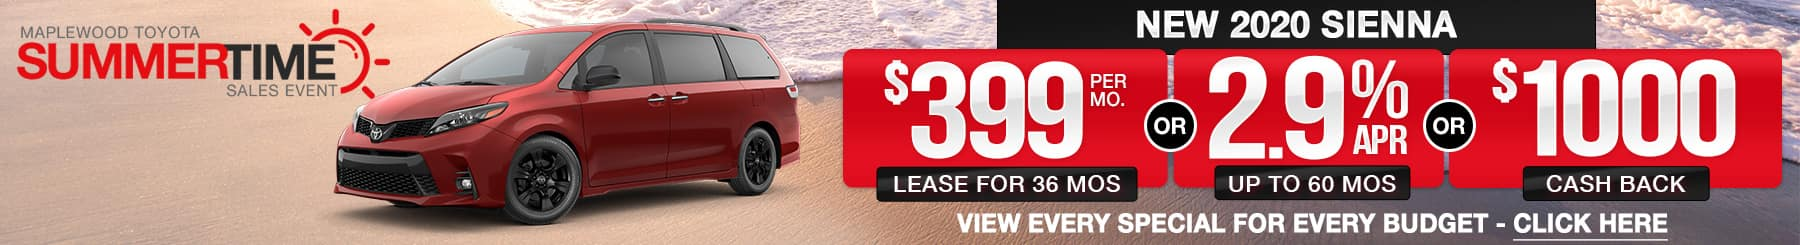 2019 Sienna Lease or Finance Offers